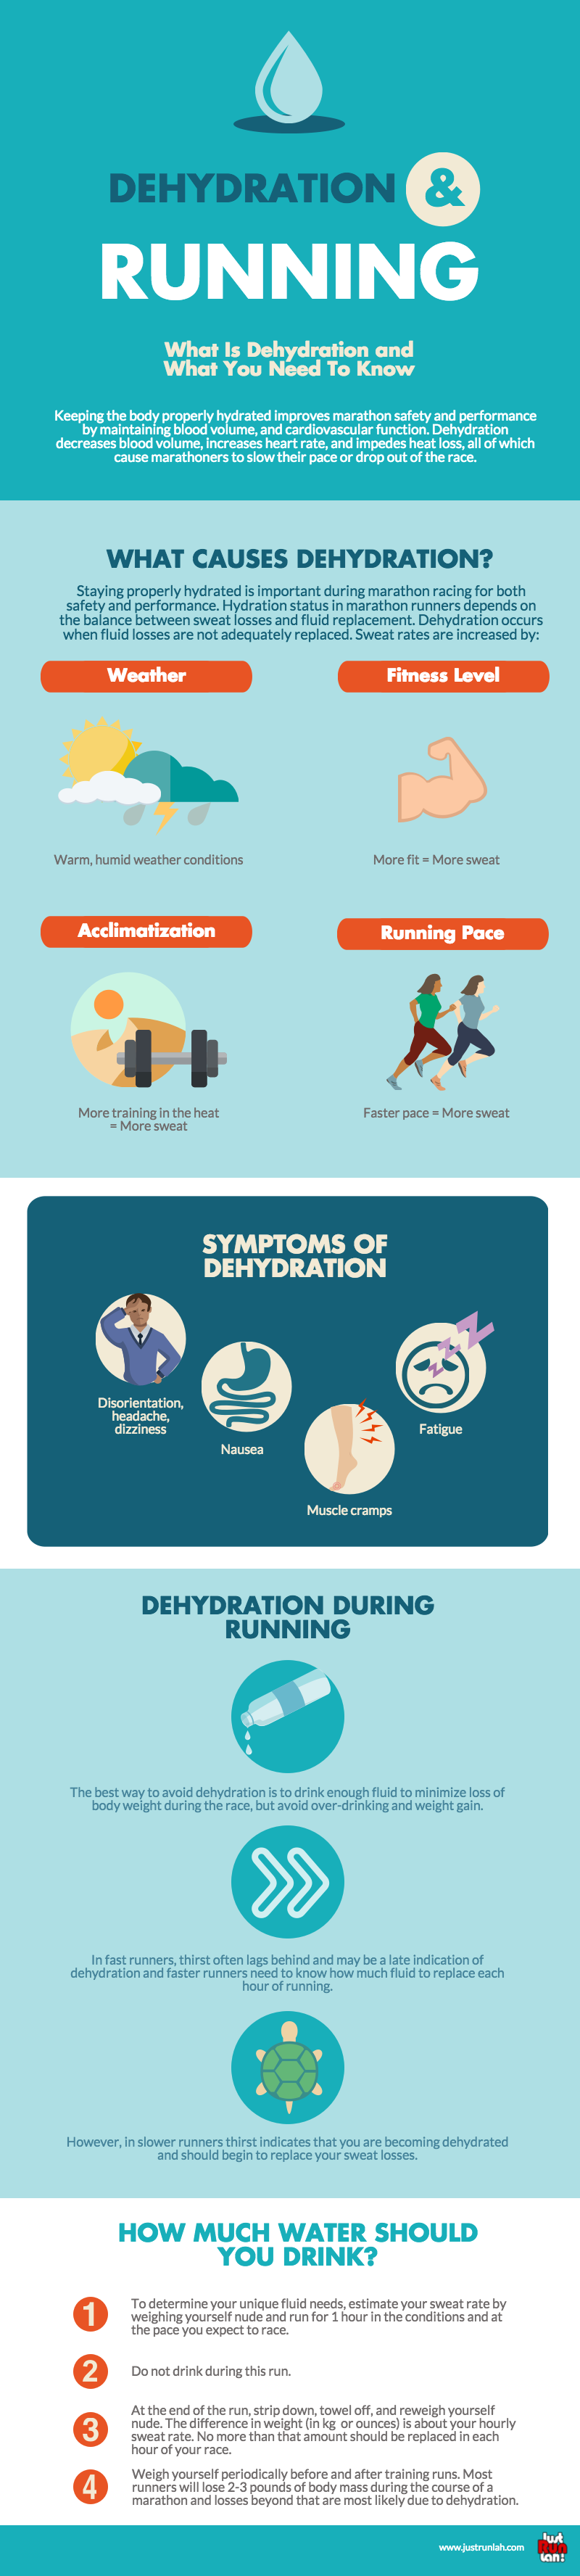 dehydration & running-1